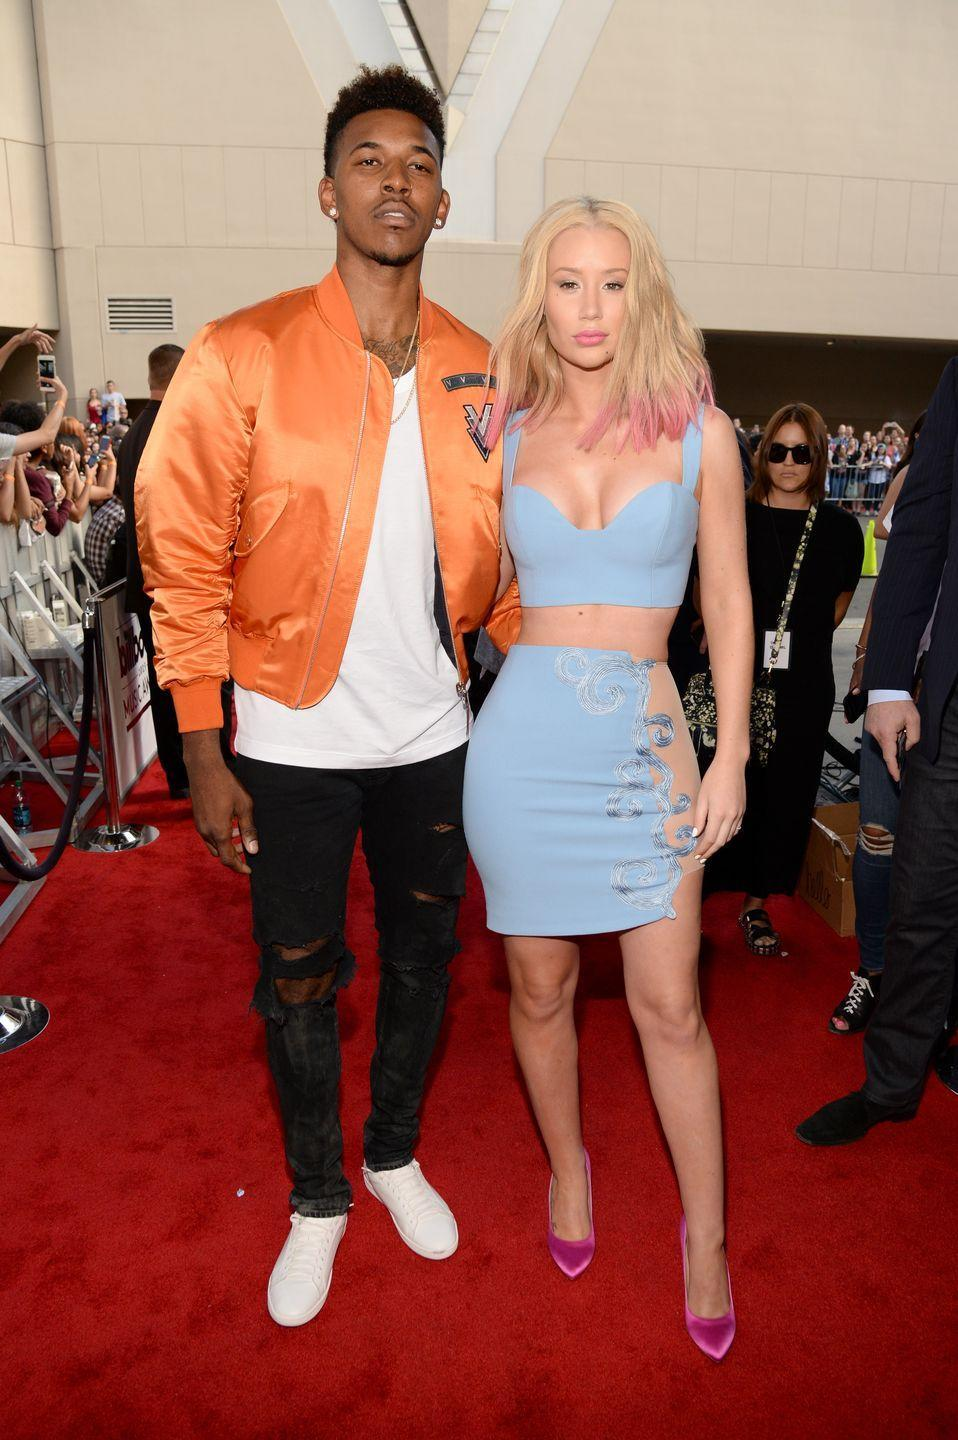 "<p>Iggy Azalea was in love with Lakers guard Nick Young, but the relationship didn't end well. The couple started seeing each other in 2014, which led to <a href=""https://www.usmagazine.com/celebrity-news/news/iggy-azalea-gets-engaged-to-nick-young-video-ring-pictures-201526/"" rel=""nofollow noopener"" target=""_blank"" data-ylk=""slk:their engagement in 2015"" class=""link rapid-noclick-resp"">their engagement in 2015</a>. In 2016, Iggy broke it off with her fiancé after<a href=""https://www.usmagazine.com/celebrity-news/news/iggy-azalea-and-nick-young-split-their-relationship-timeline-w210627/"" rel=""nofollow noopener"" target=""_blank"" data-ylk=""slk:he admitted to cheating"" class=""link rapid-noclick-resp""> he admitted to cheating</a>.</p>"